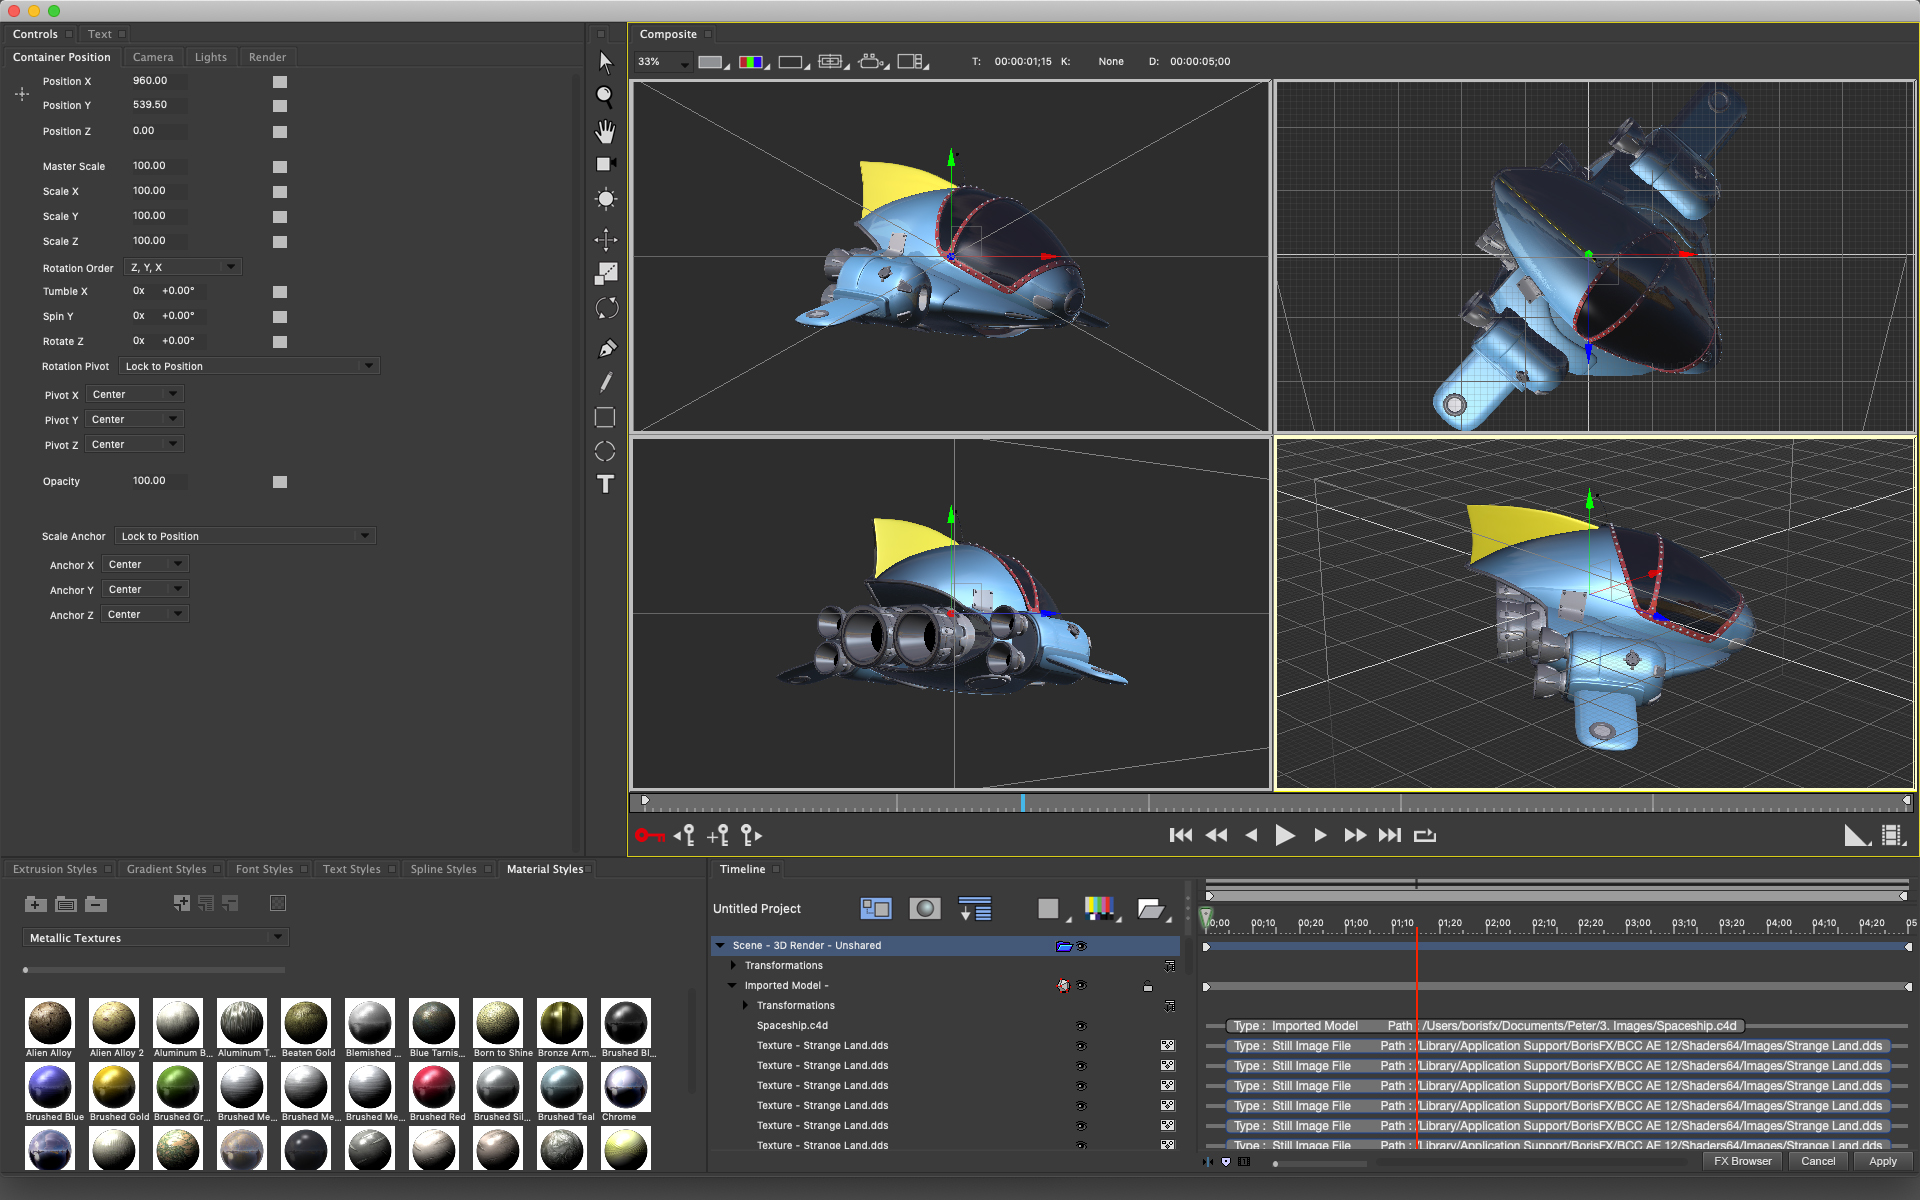 Title Studio interface showing new Maxon Cinema 4D model import integration